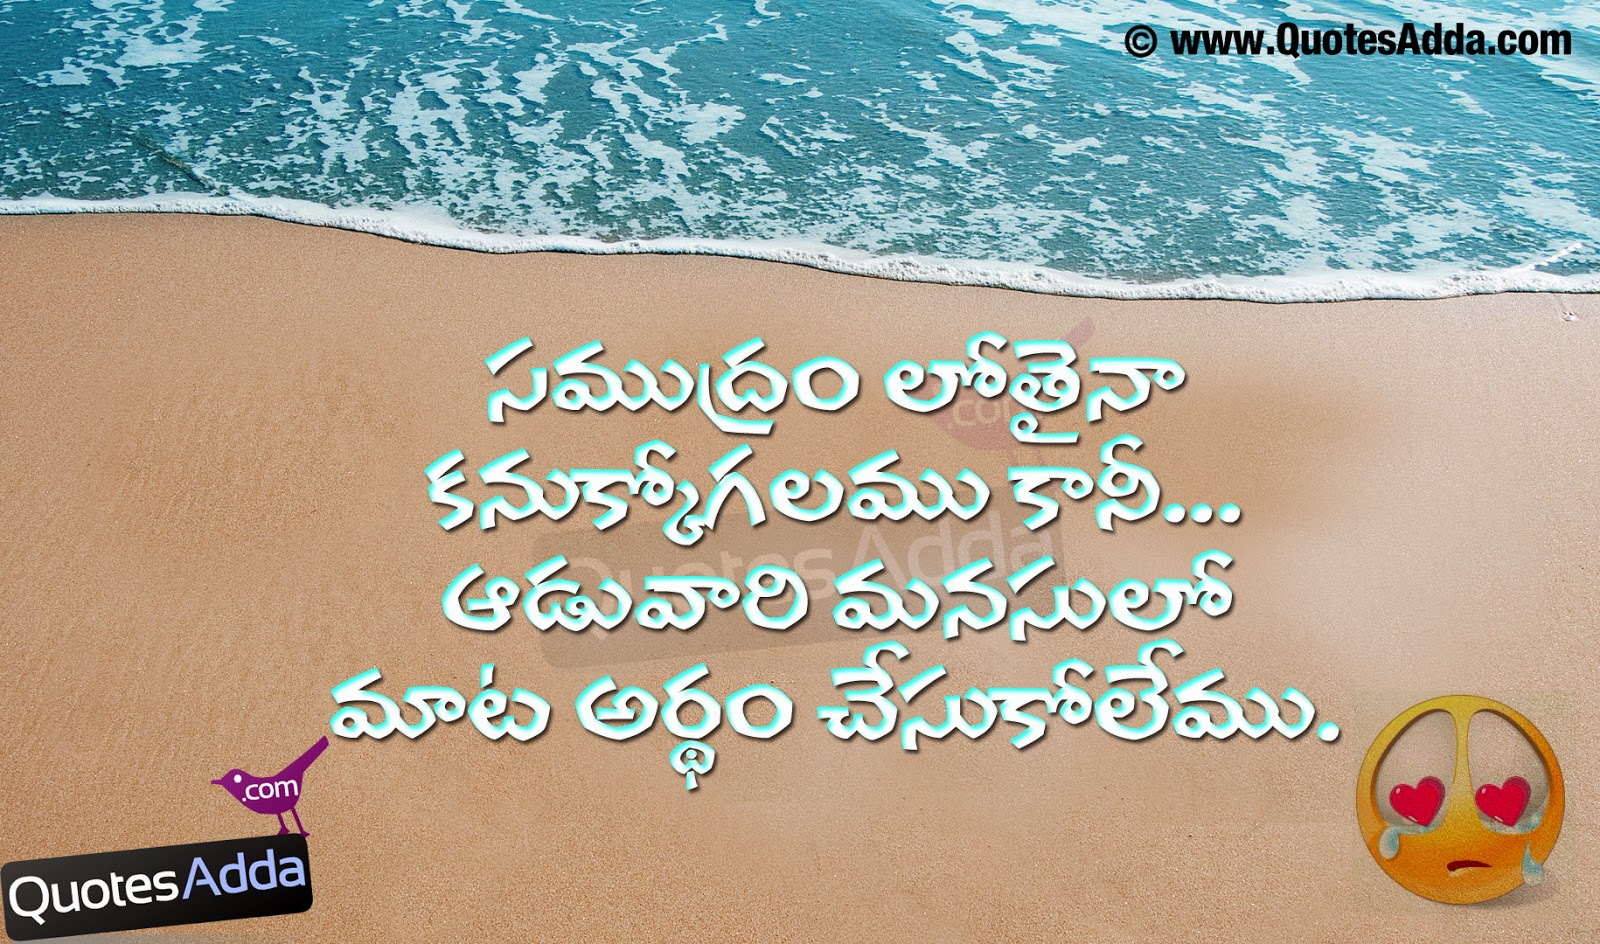 Telugu Girls Feelings Quotes images QuotesAdda.com Telugu Quotes ...